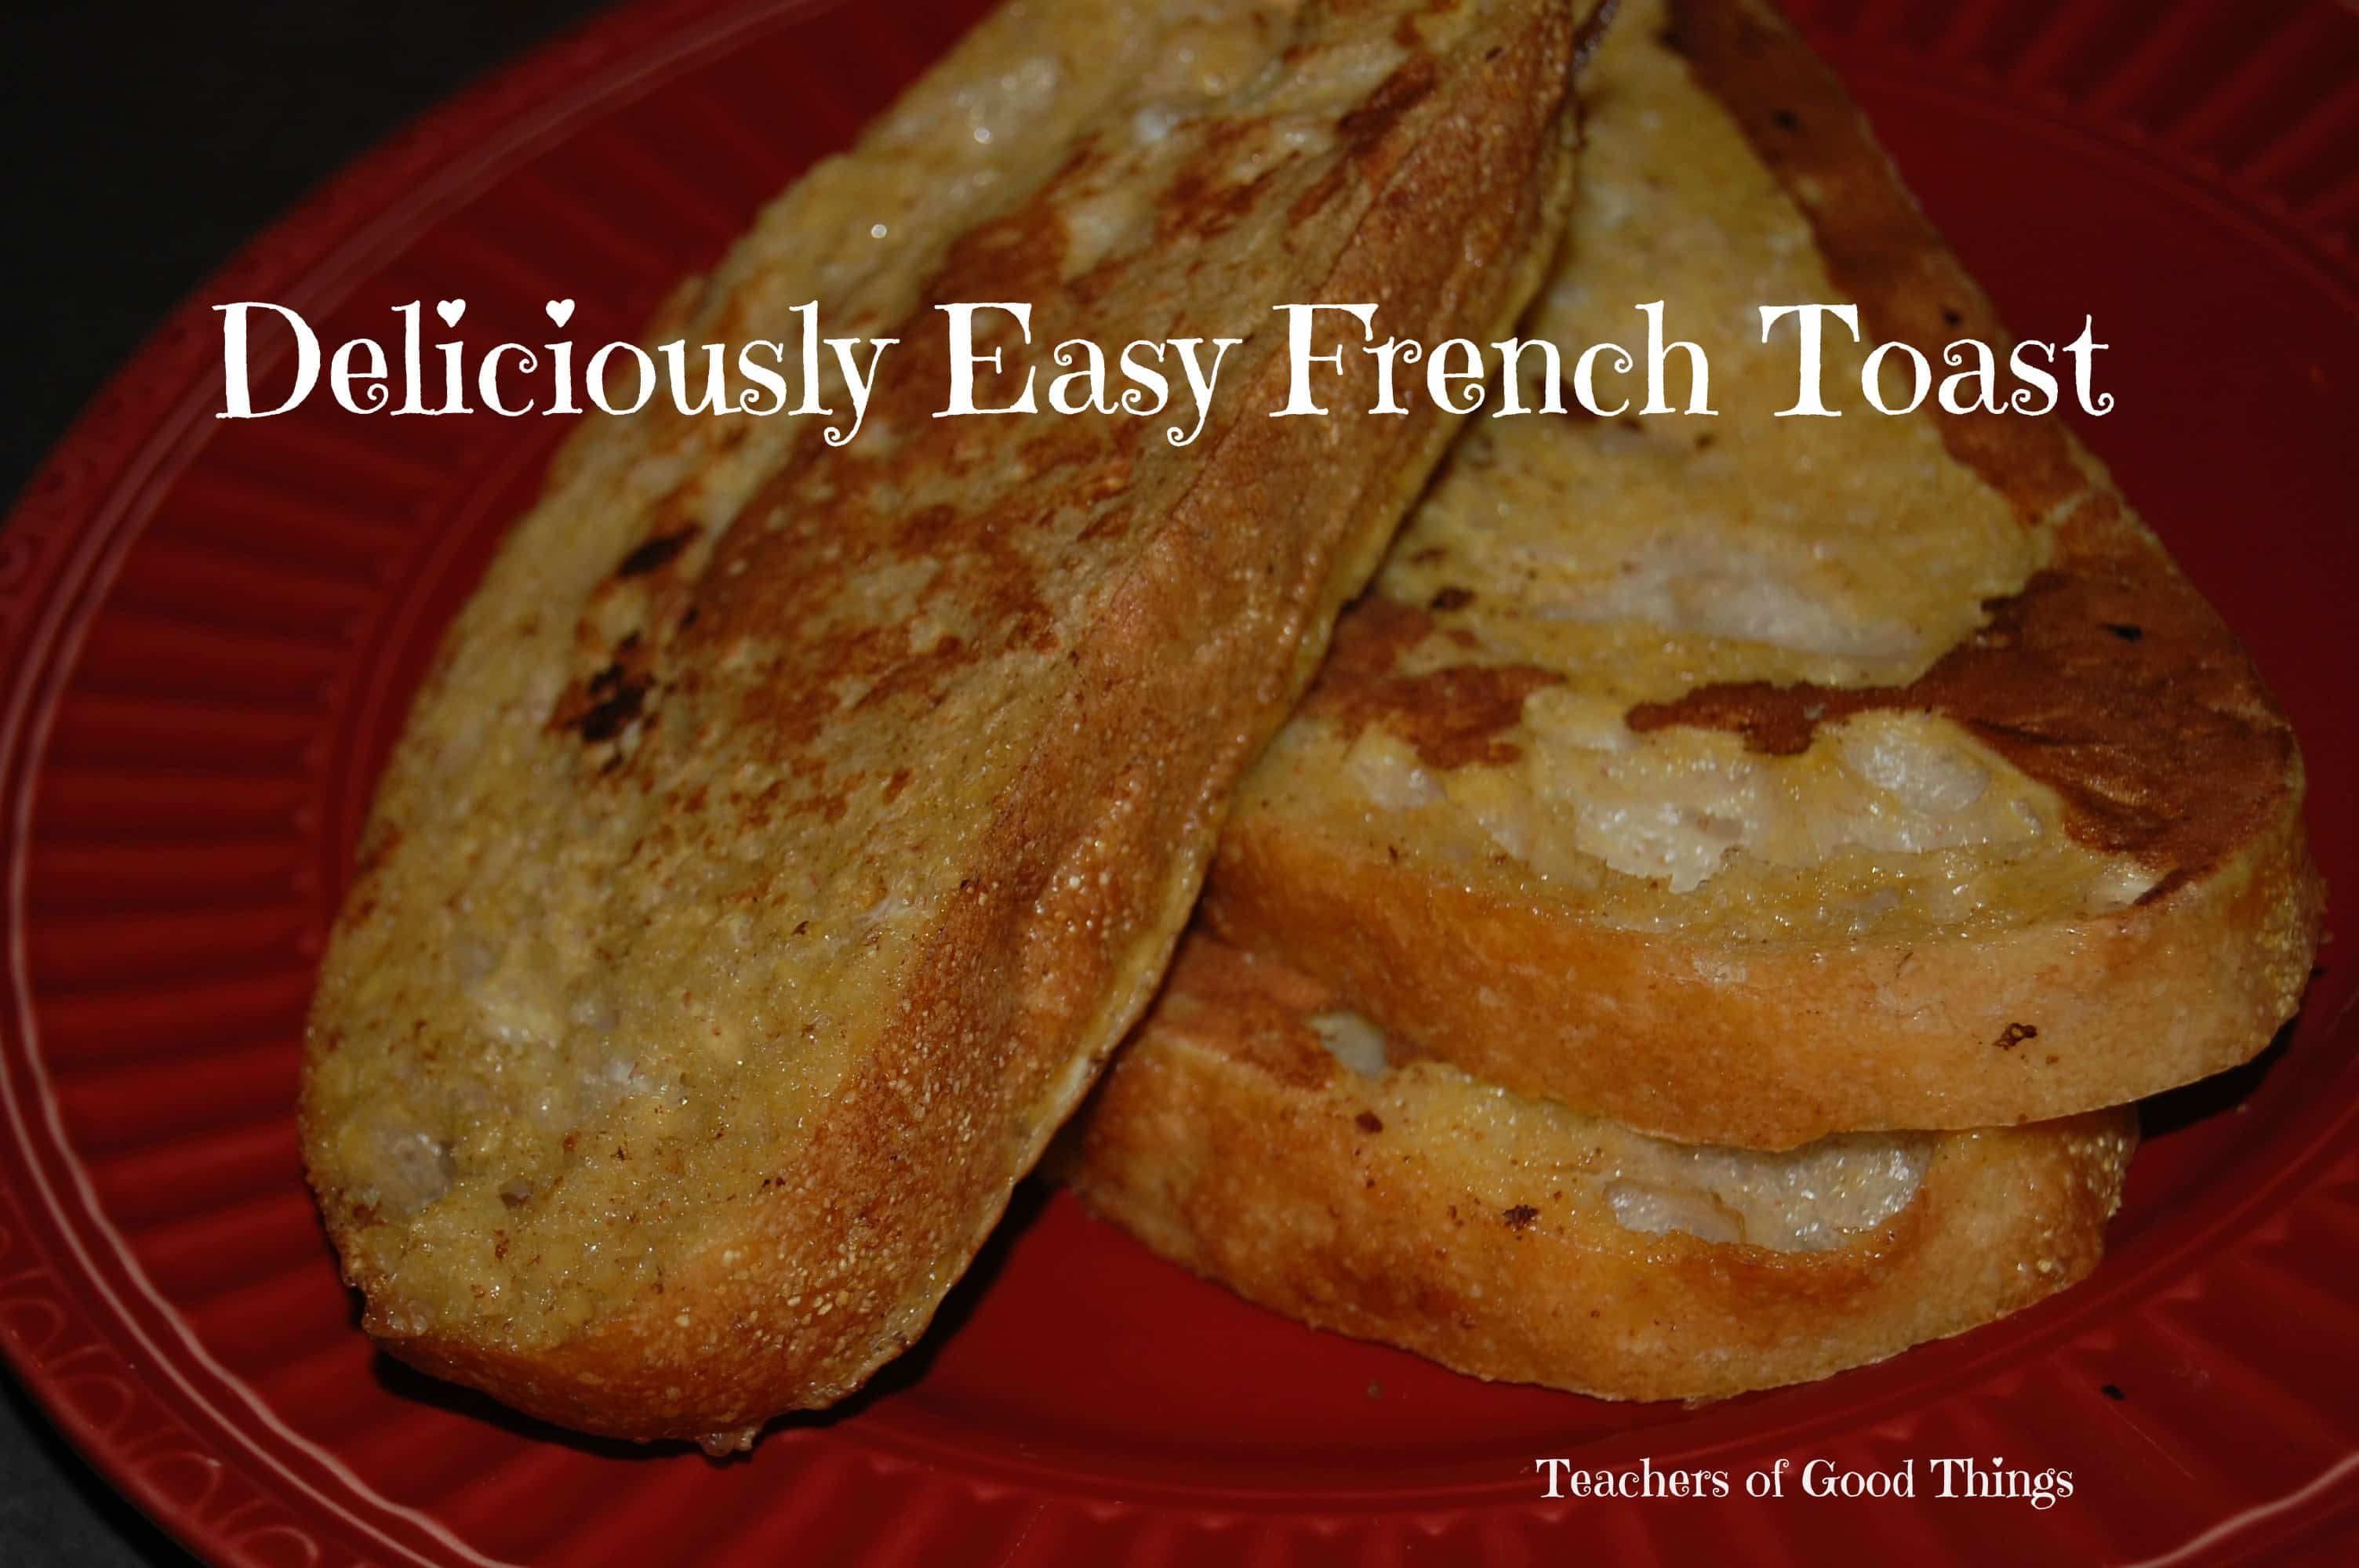 Deliciously Easy French Toast